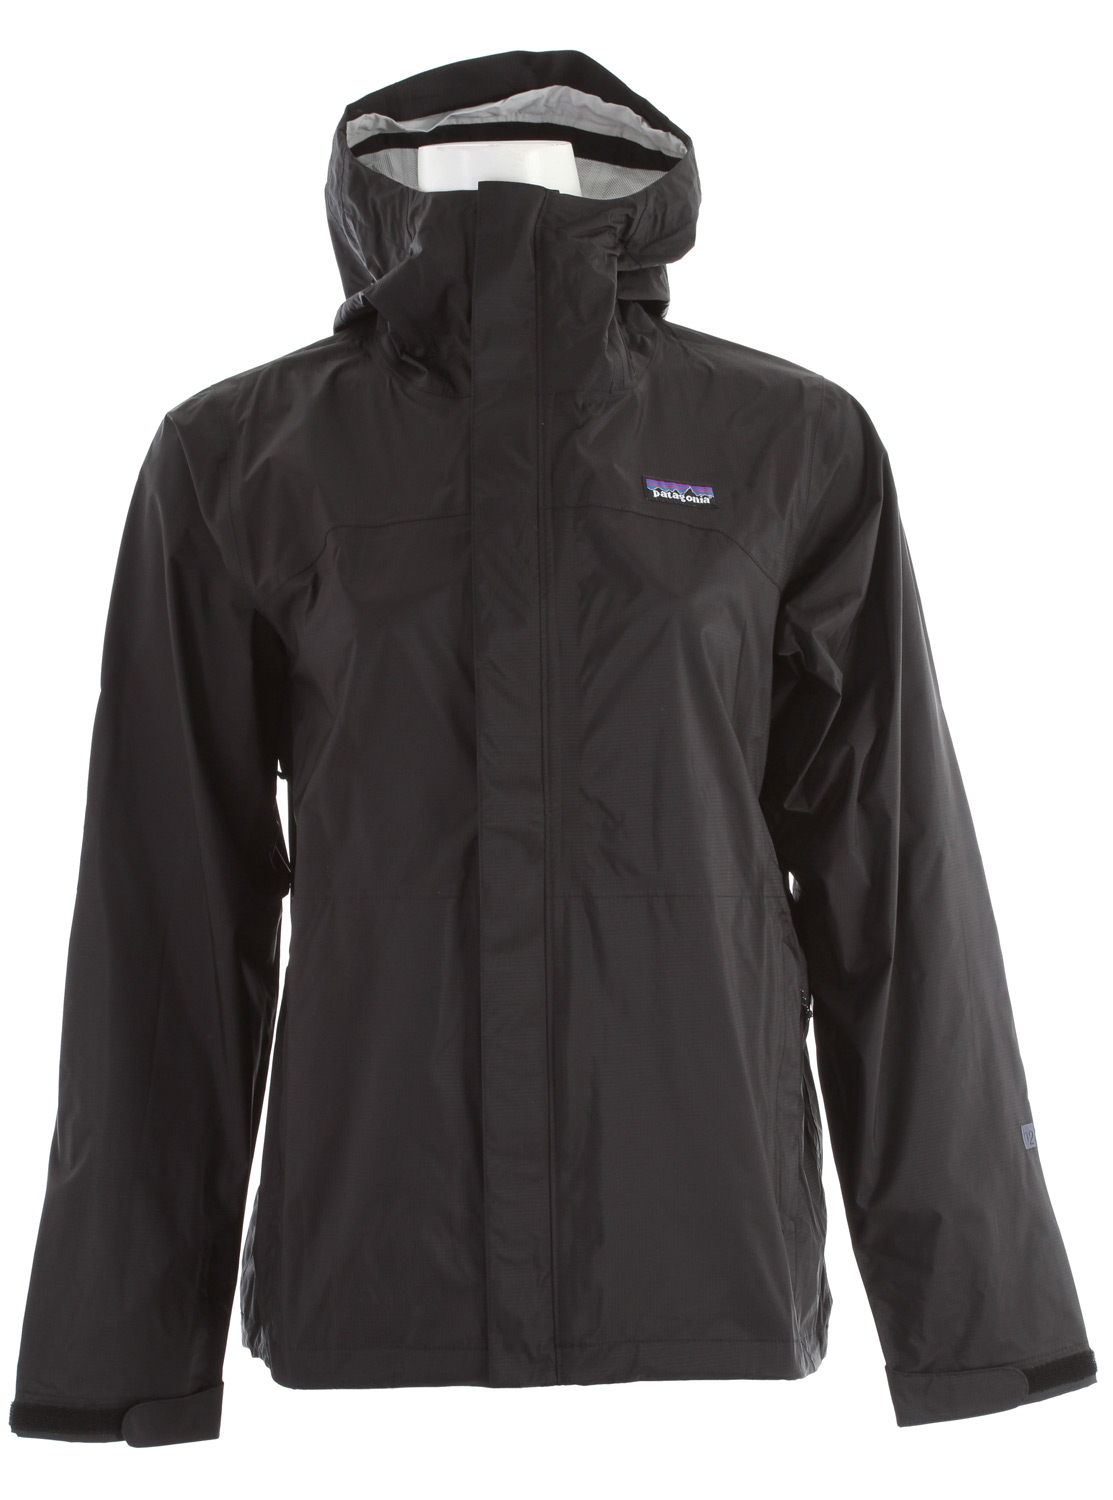 Camp and Hike The Patagonia Torrentshell durable rain jacket, made with 2.5-layer nylon ripstop and a waterproof/breathable H2no barrier is built for trekking and hiking in wet conditionsKey Features of the Patagonia Torrentshell Jacket: 2.5-layer nylon ripstop shell with a waterproof/breathable H2no barrier and Deluge DWR (durable water repellent) finish 2-way-adjustable hood with laminated visor rolls down and stows Microfleece-lined neck for comfort and enhanced protection of waterproof/breathable barrier Pockets: two handwarmers, one internal mesh drop-in; stows in hand pocket Center-front zip has exterior and interior storm flaps to keep water out; pit zips have storm flaps and Deluge DWR-treated zippers Self-fabric hook-and-loop cuff closures Regular fit (12.8 oz) 363 g fabric: 2.5-layer, 2.6-oz 50-denier 100% nylon ripstop with a waterproof/breathable H2no barrier and a Deluge DWR finish - $82.95